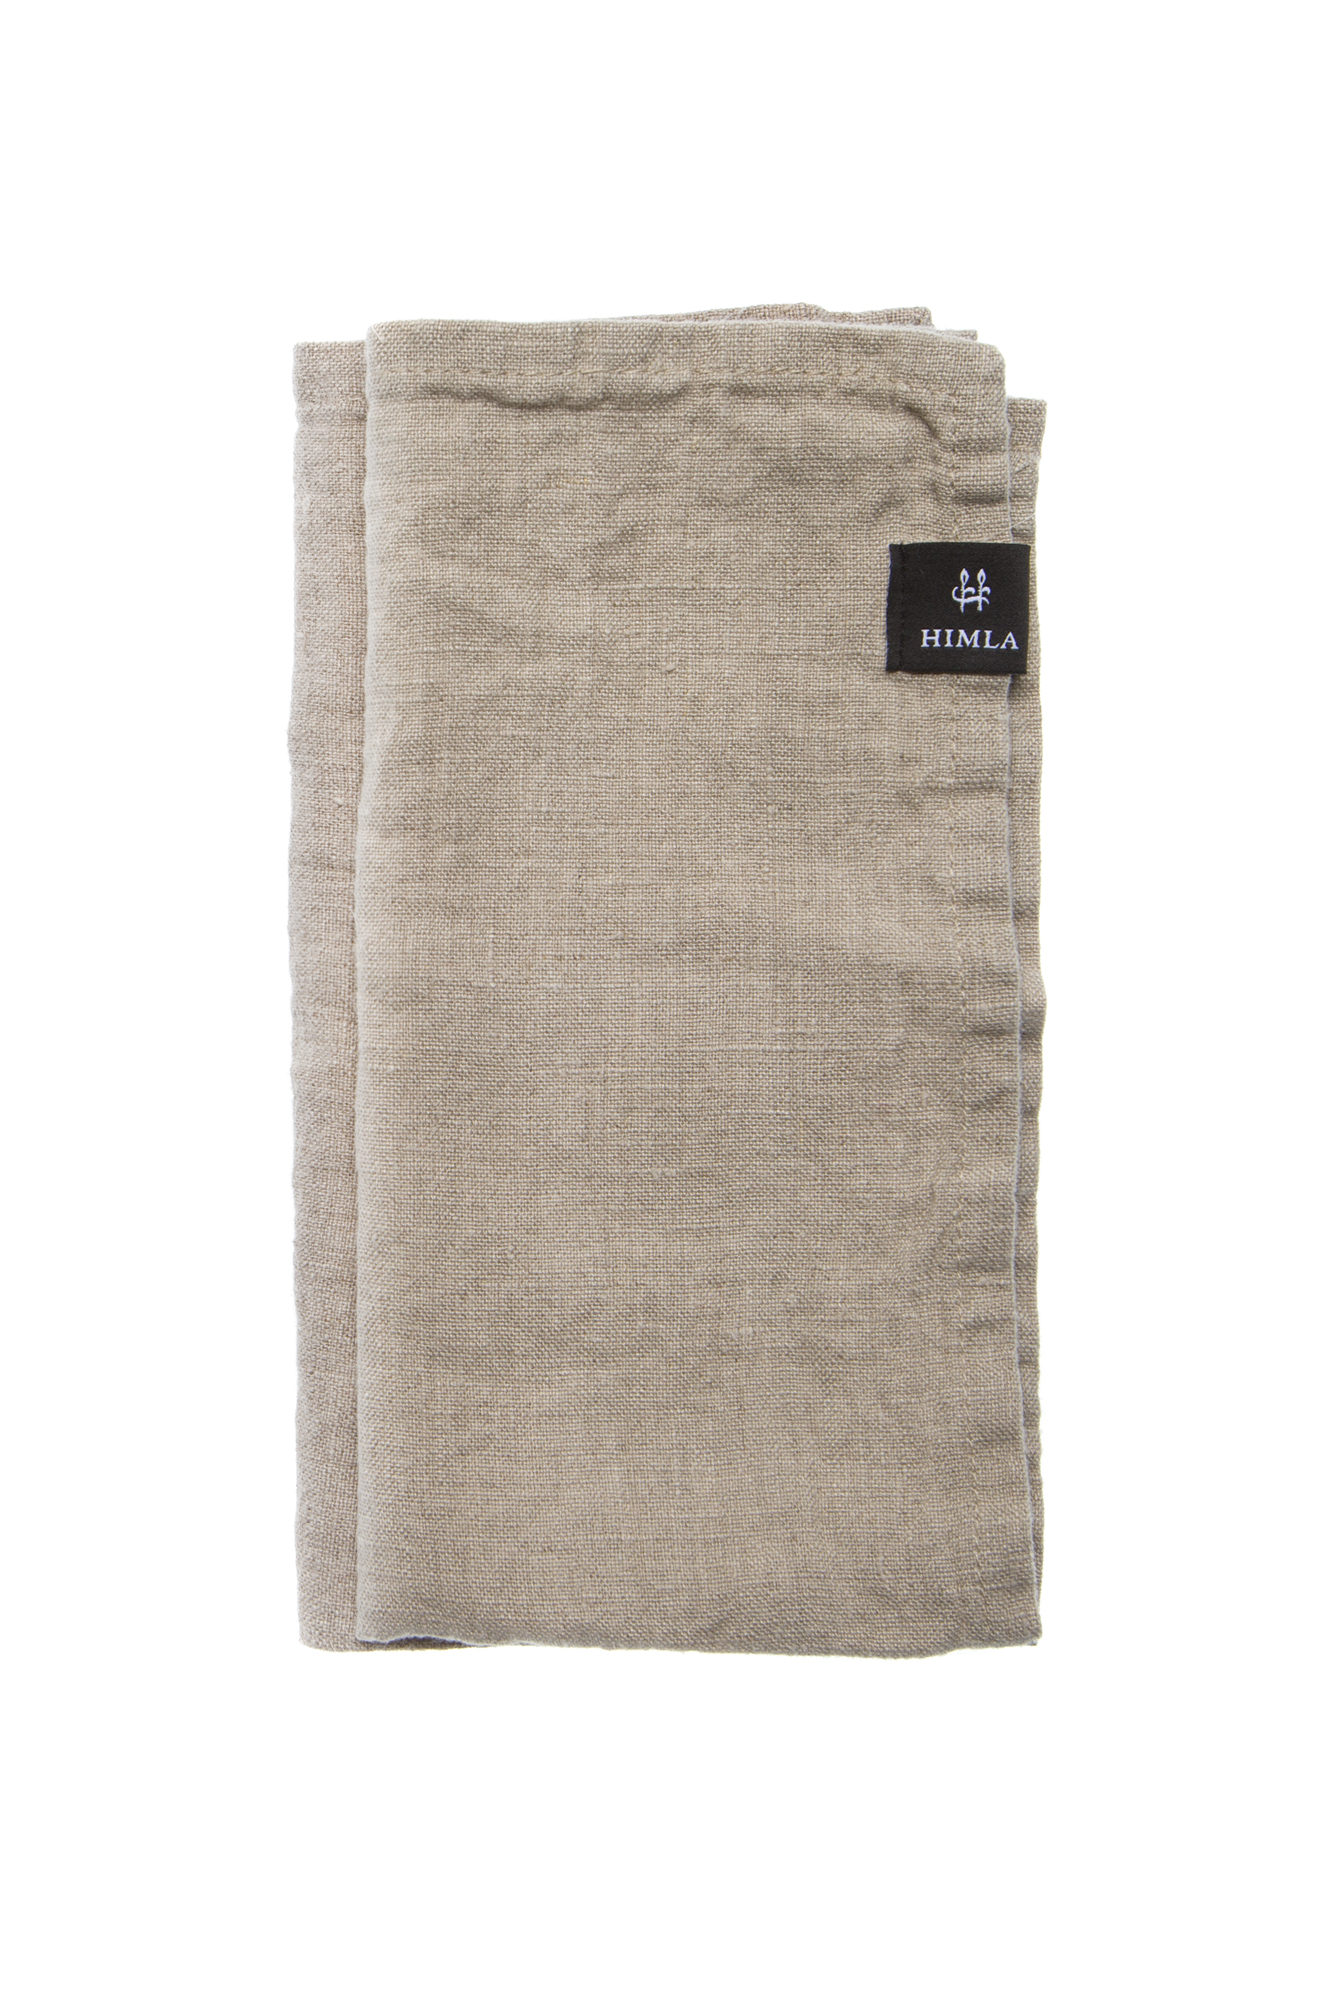 Natural Sunshine Linen Napkin 45x45cm (Set of 4)